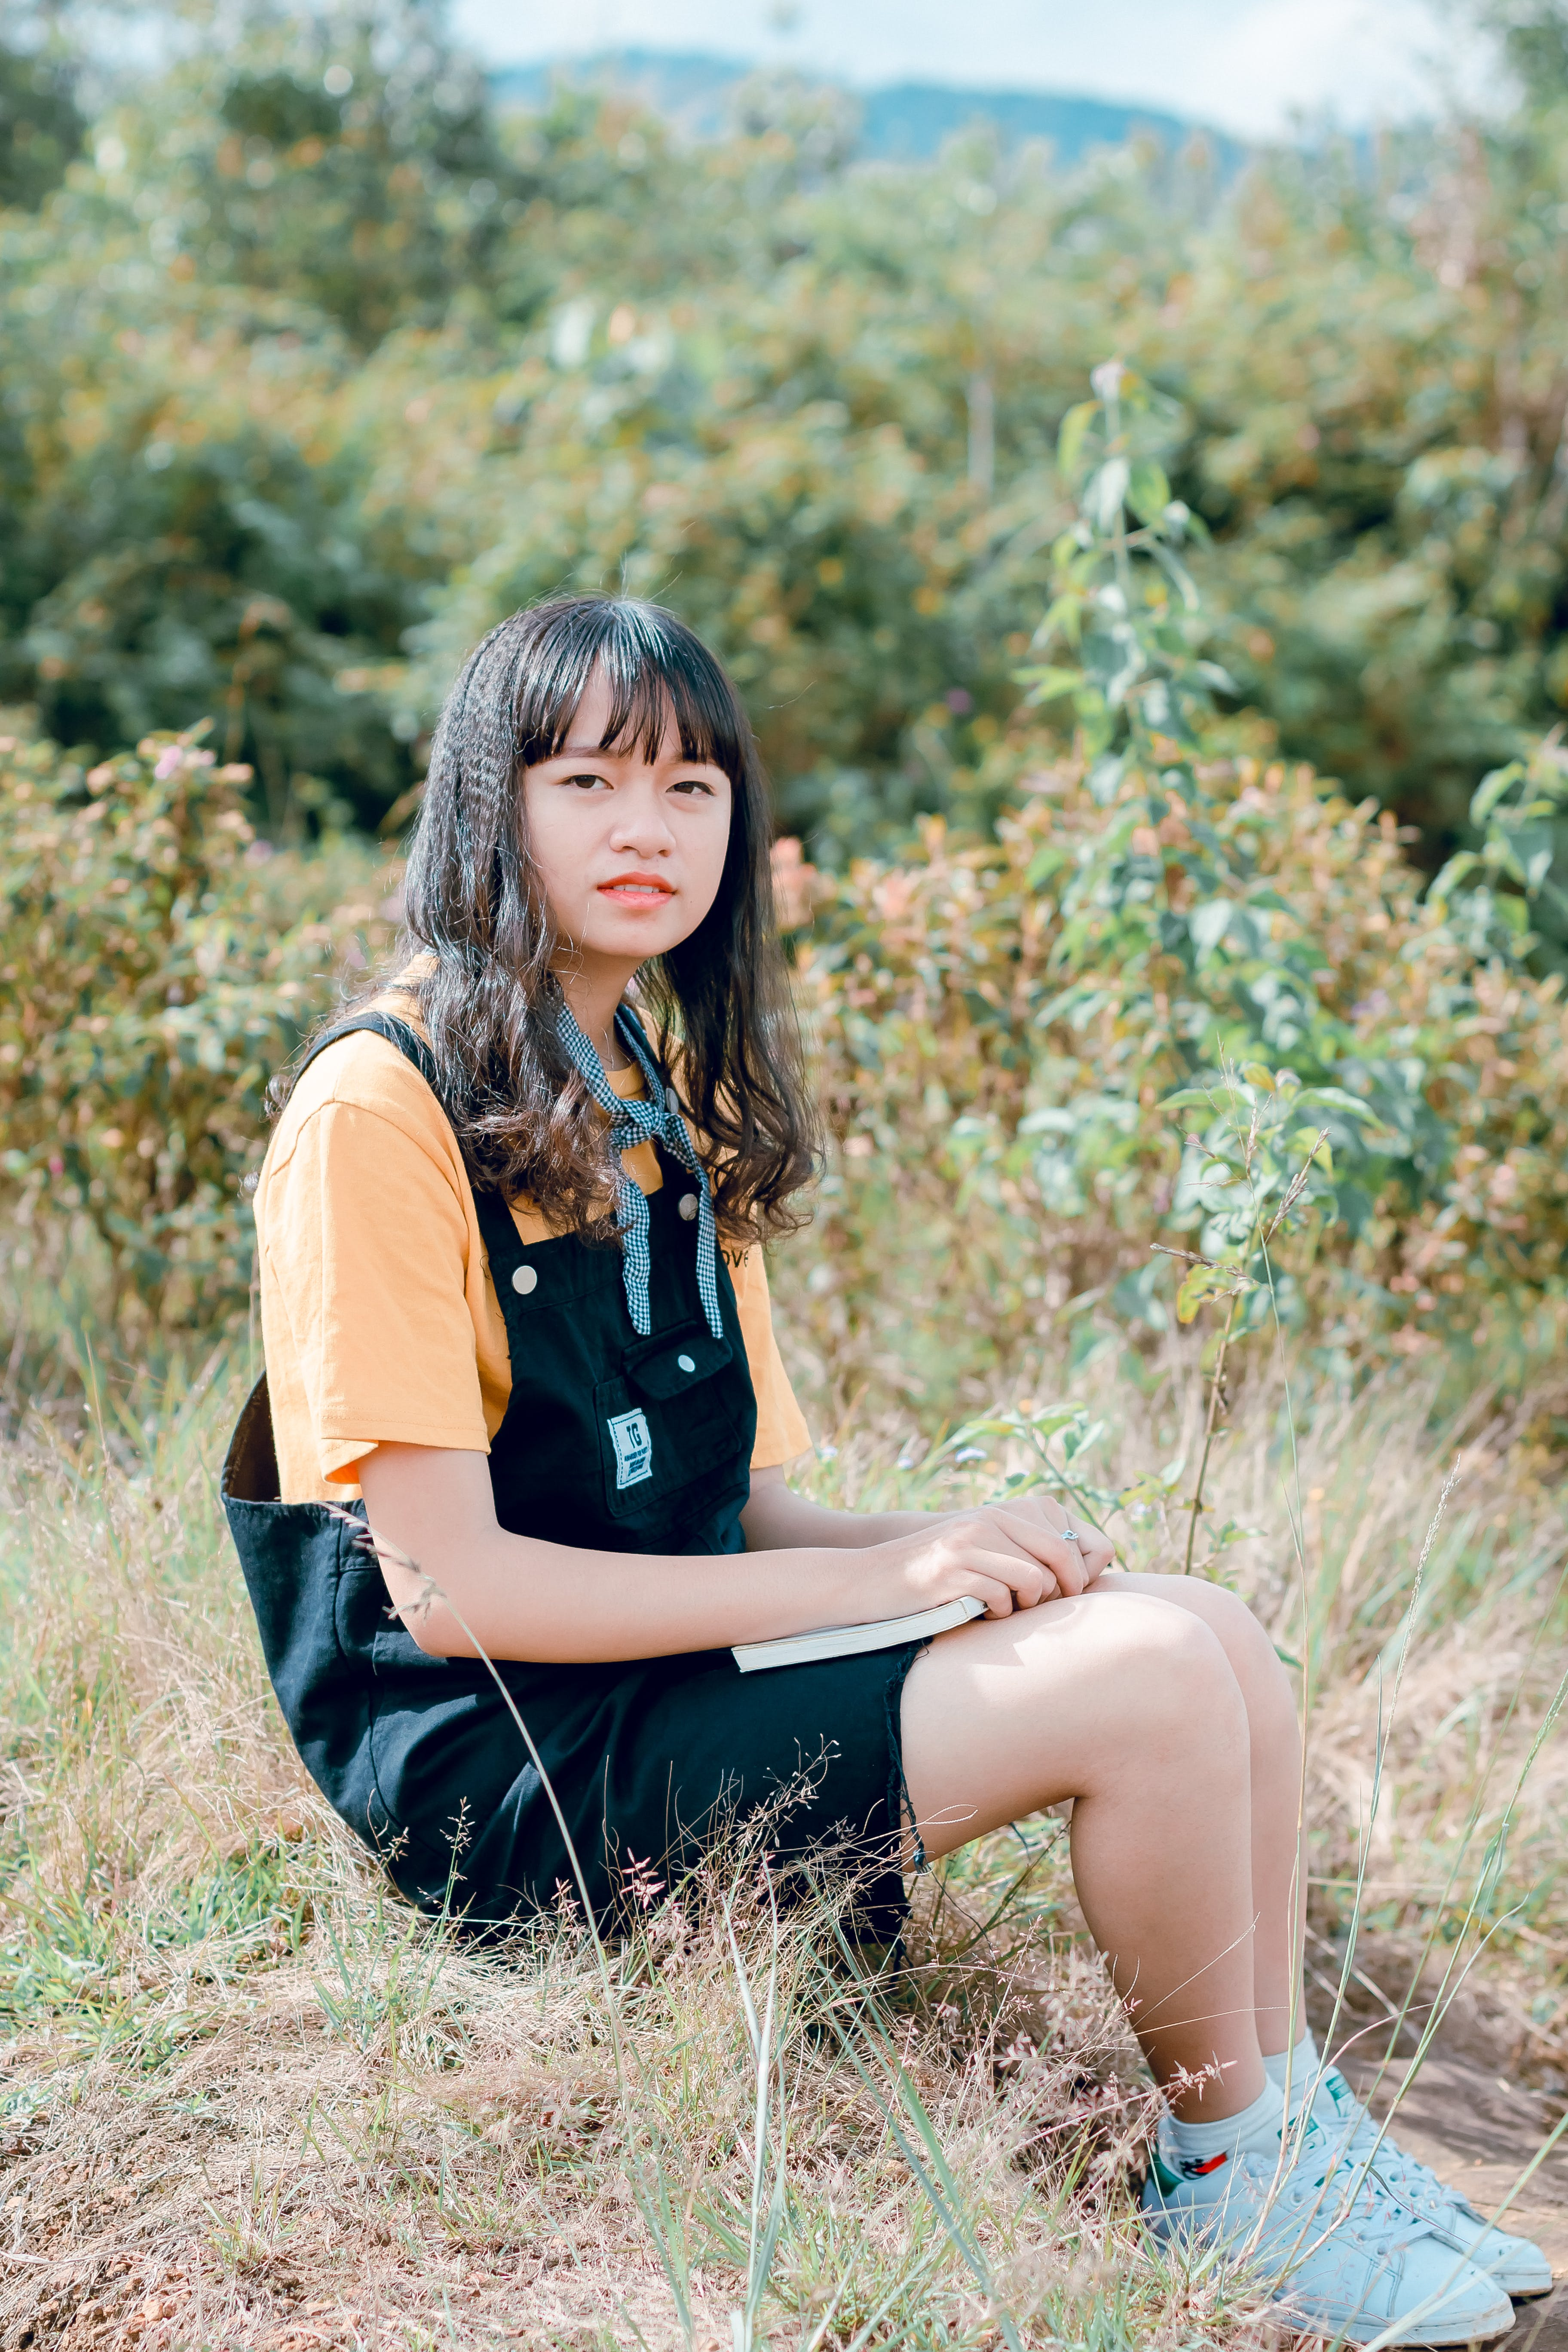 Girl in Black Dungaree and Orange Shirt Sitting of Grass Field